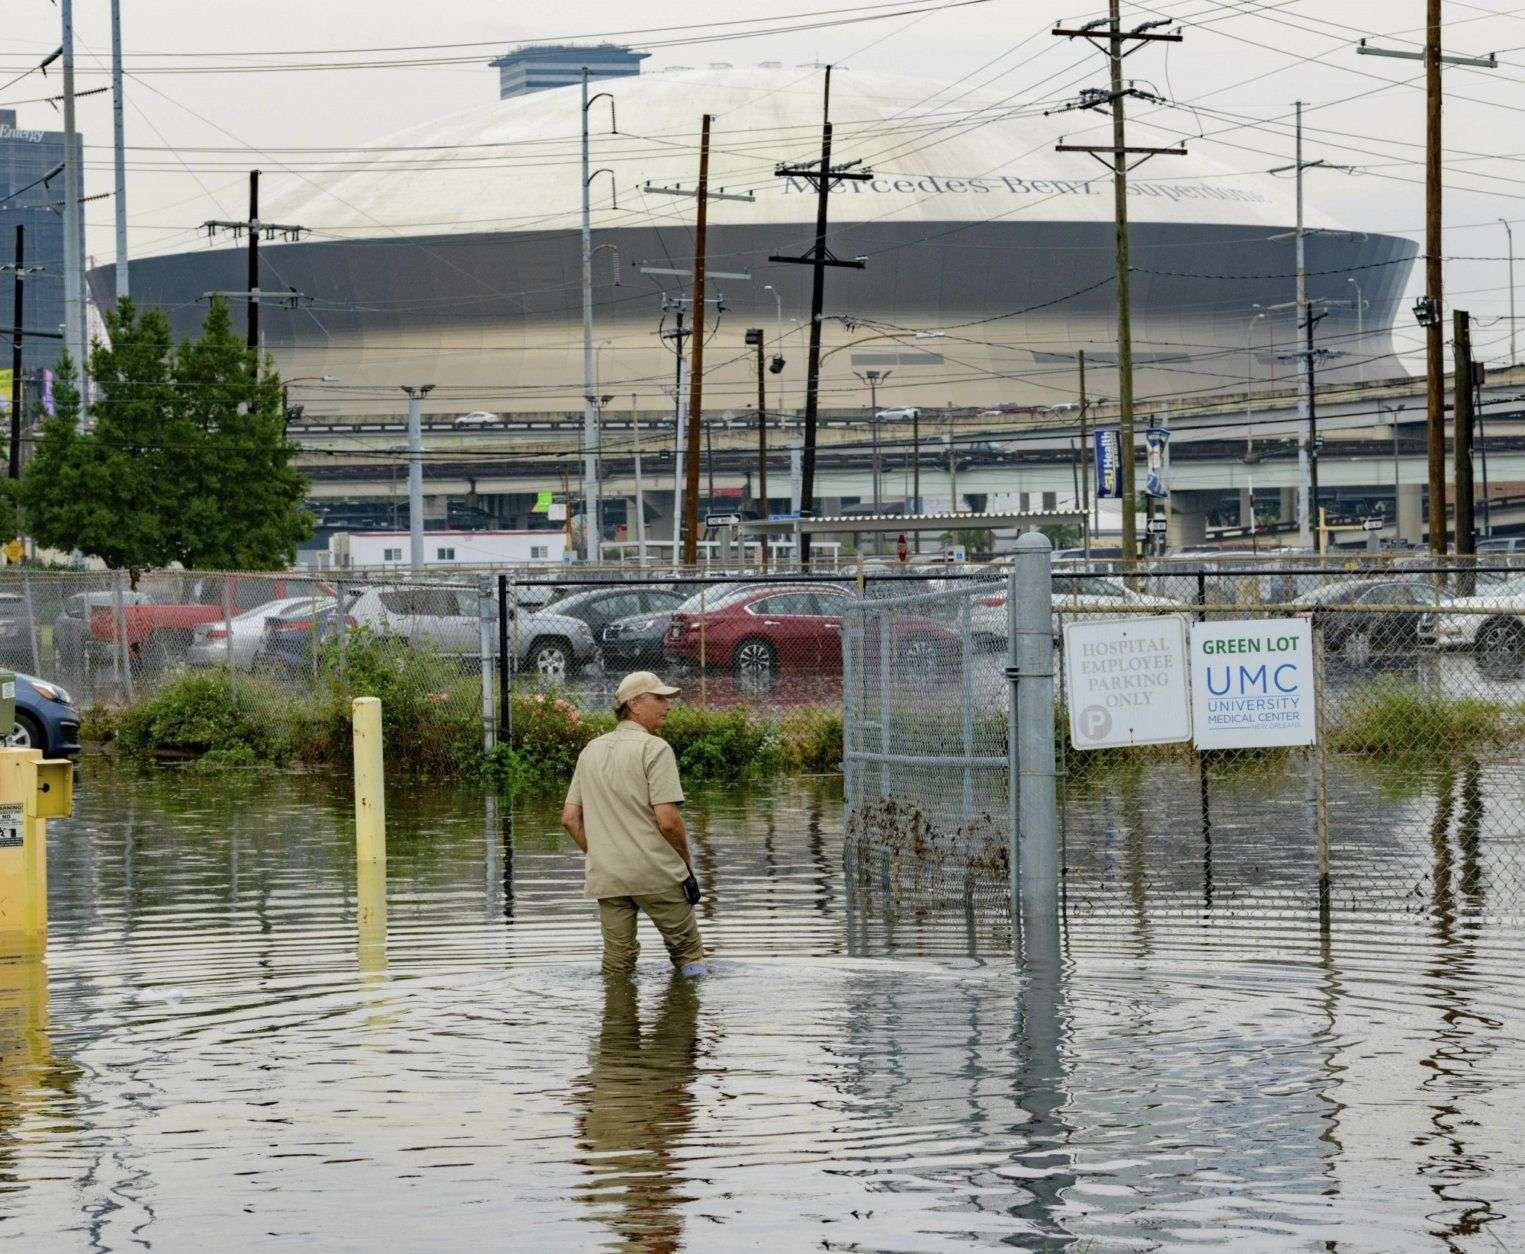 Frank Conforto Jr. walks in the parking lot of the University Medical Center (UMC) with the Mercedes-Benz Superdome in the background on Glavez Street in New Orleans after flooding from a storm Wednesday, July 10, 2019. Louisiana Gov. John Bel Edwards has declared a state of emergency in anticipation of tropical weather that could dump as much as 15 inches (38 centimeters) of rain in the state over the coming days. (AP Photo/Matthew Hinton)